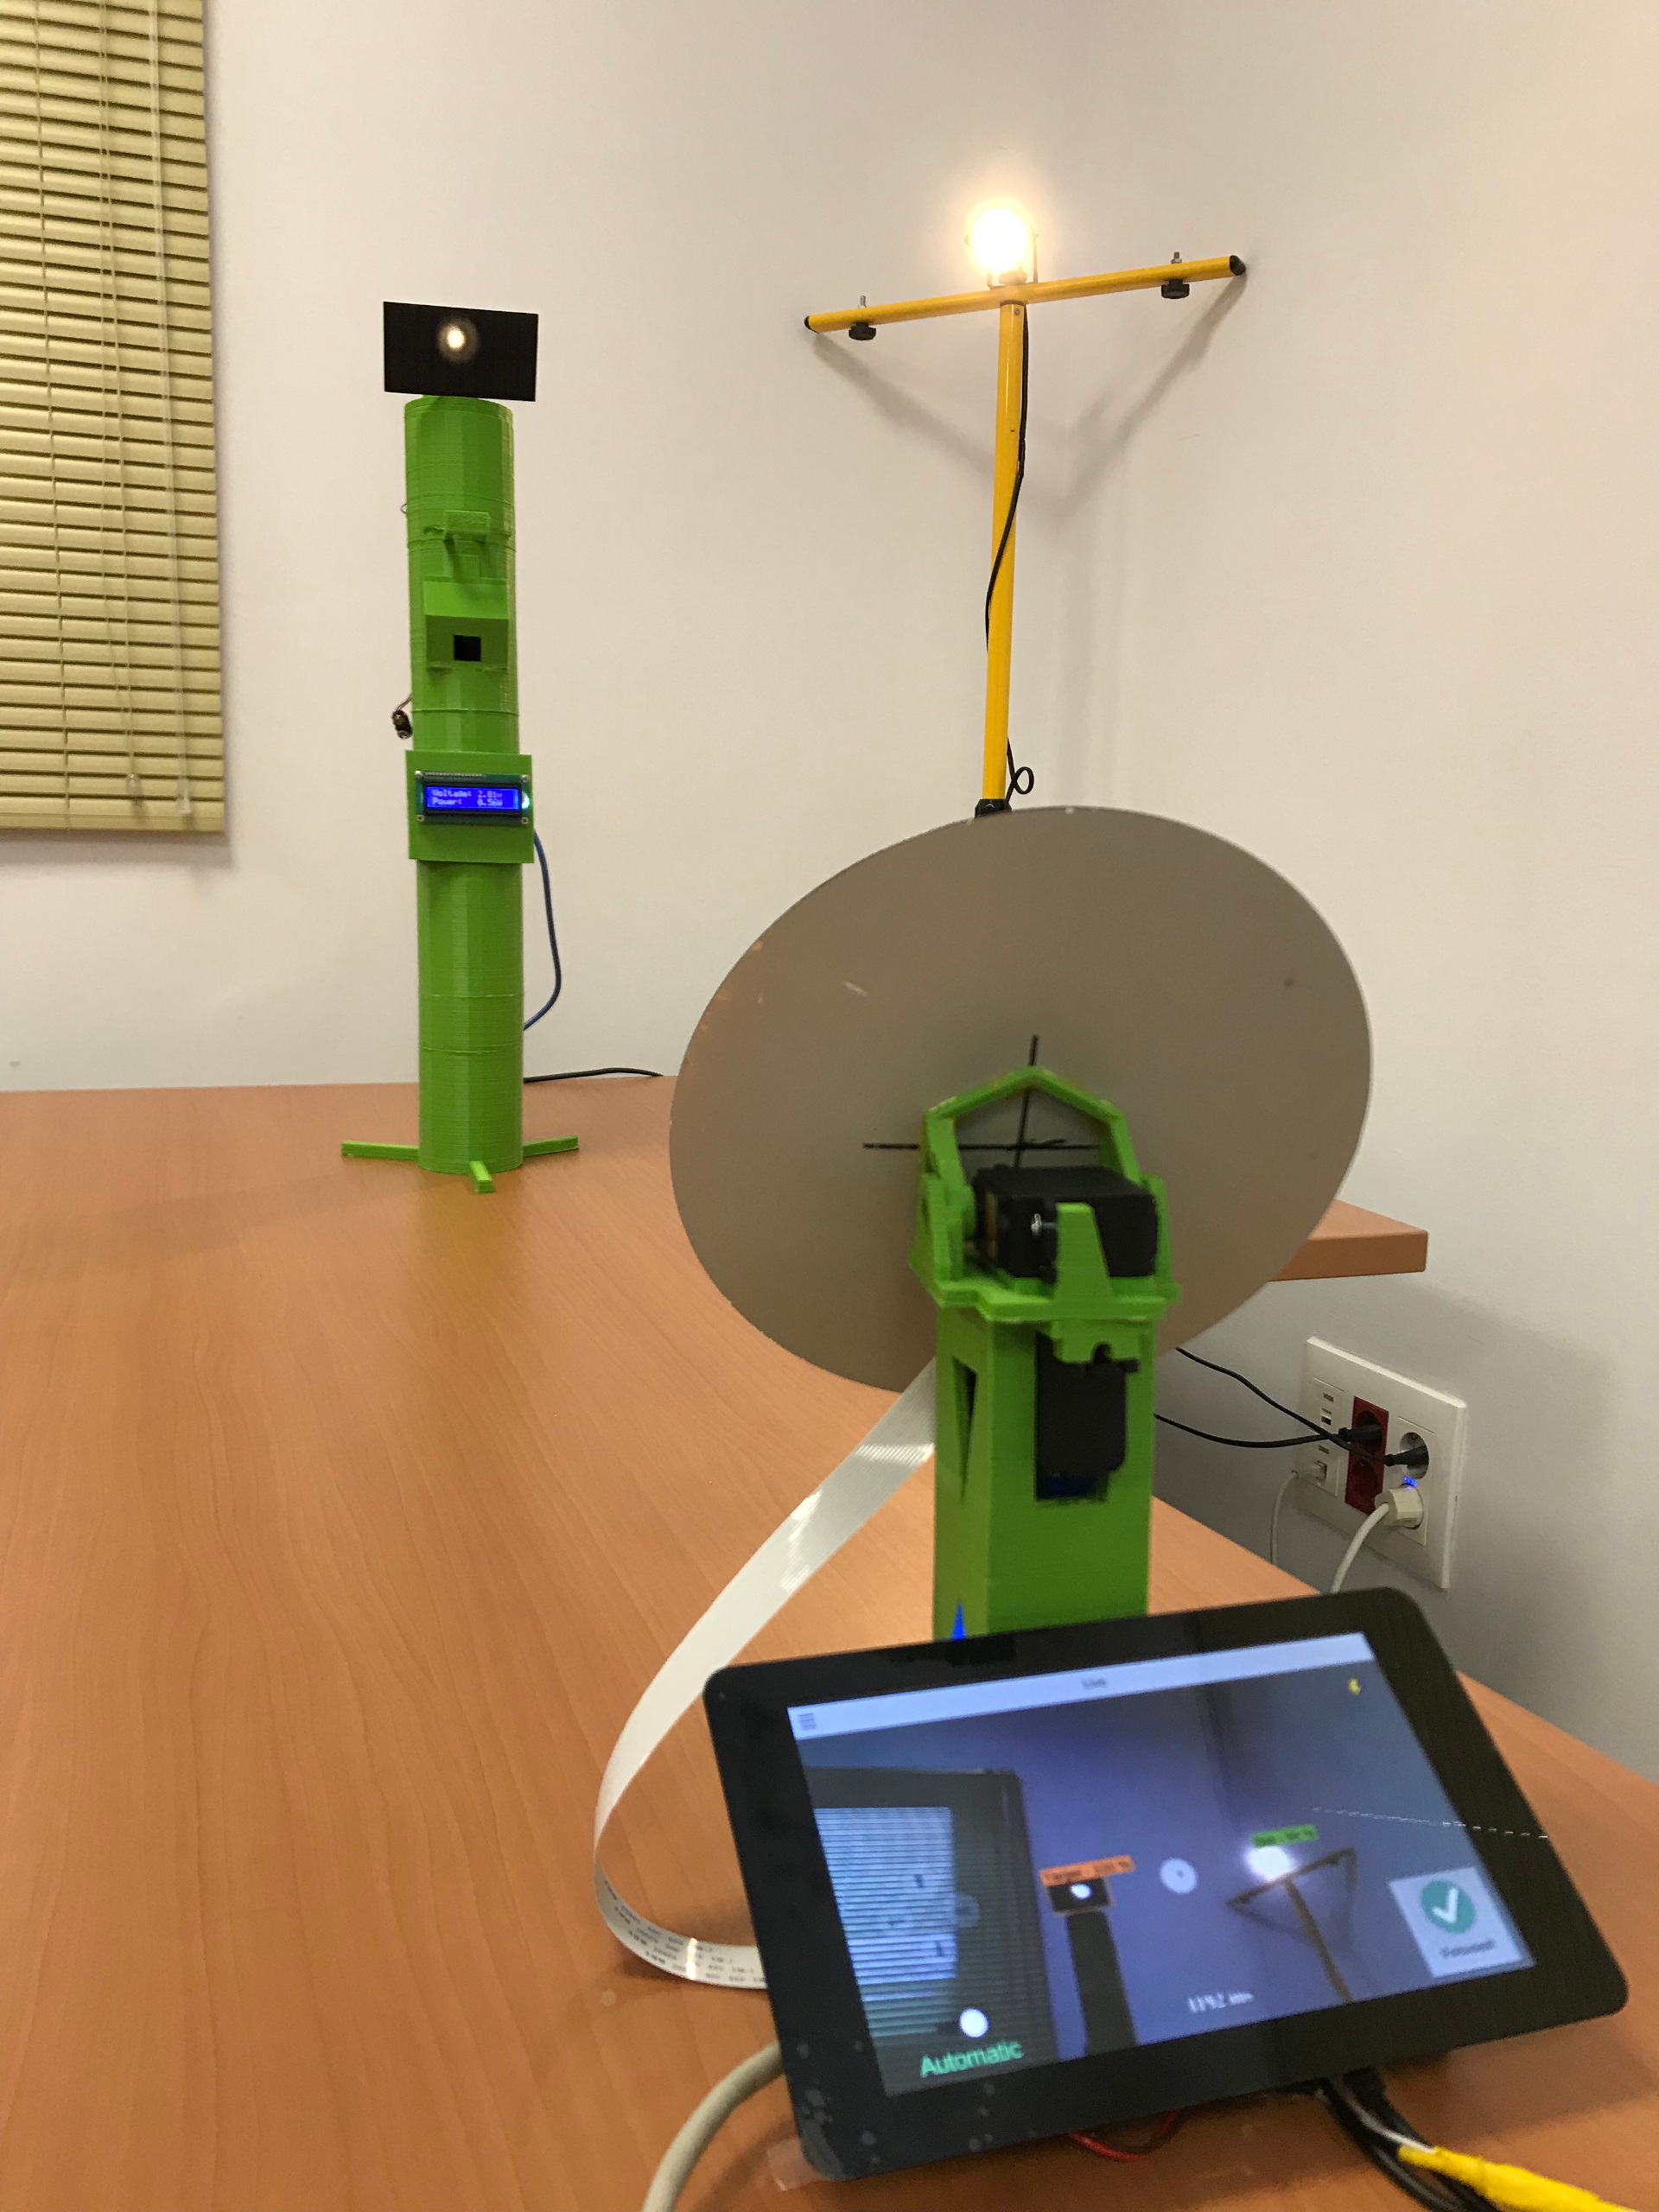 Smart solar tower power mockup based on deep learning for computer vision